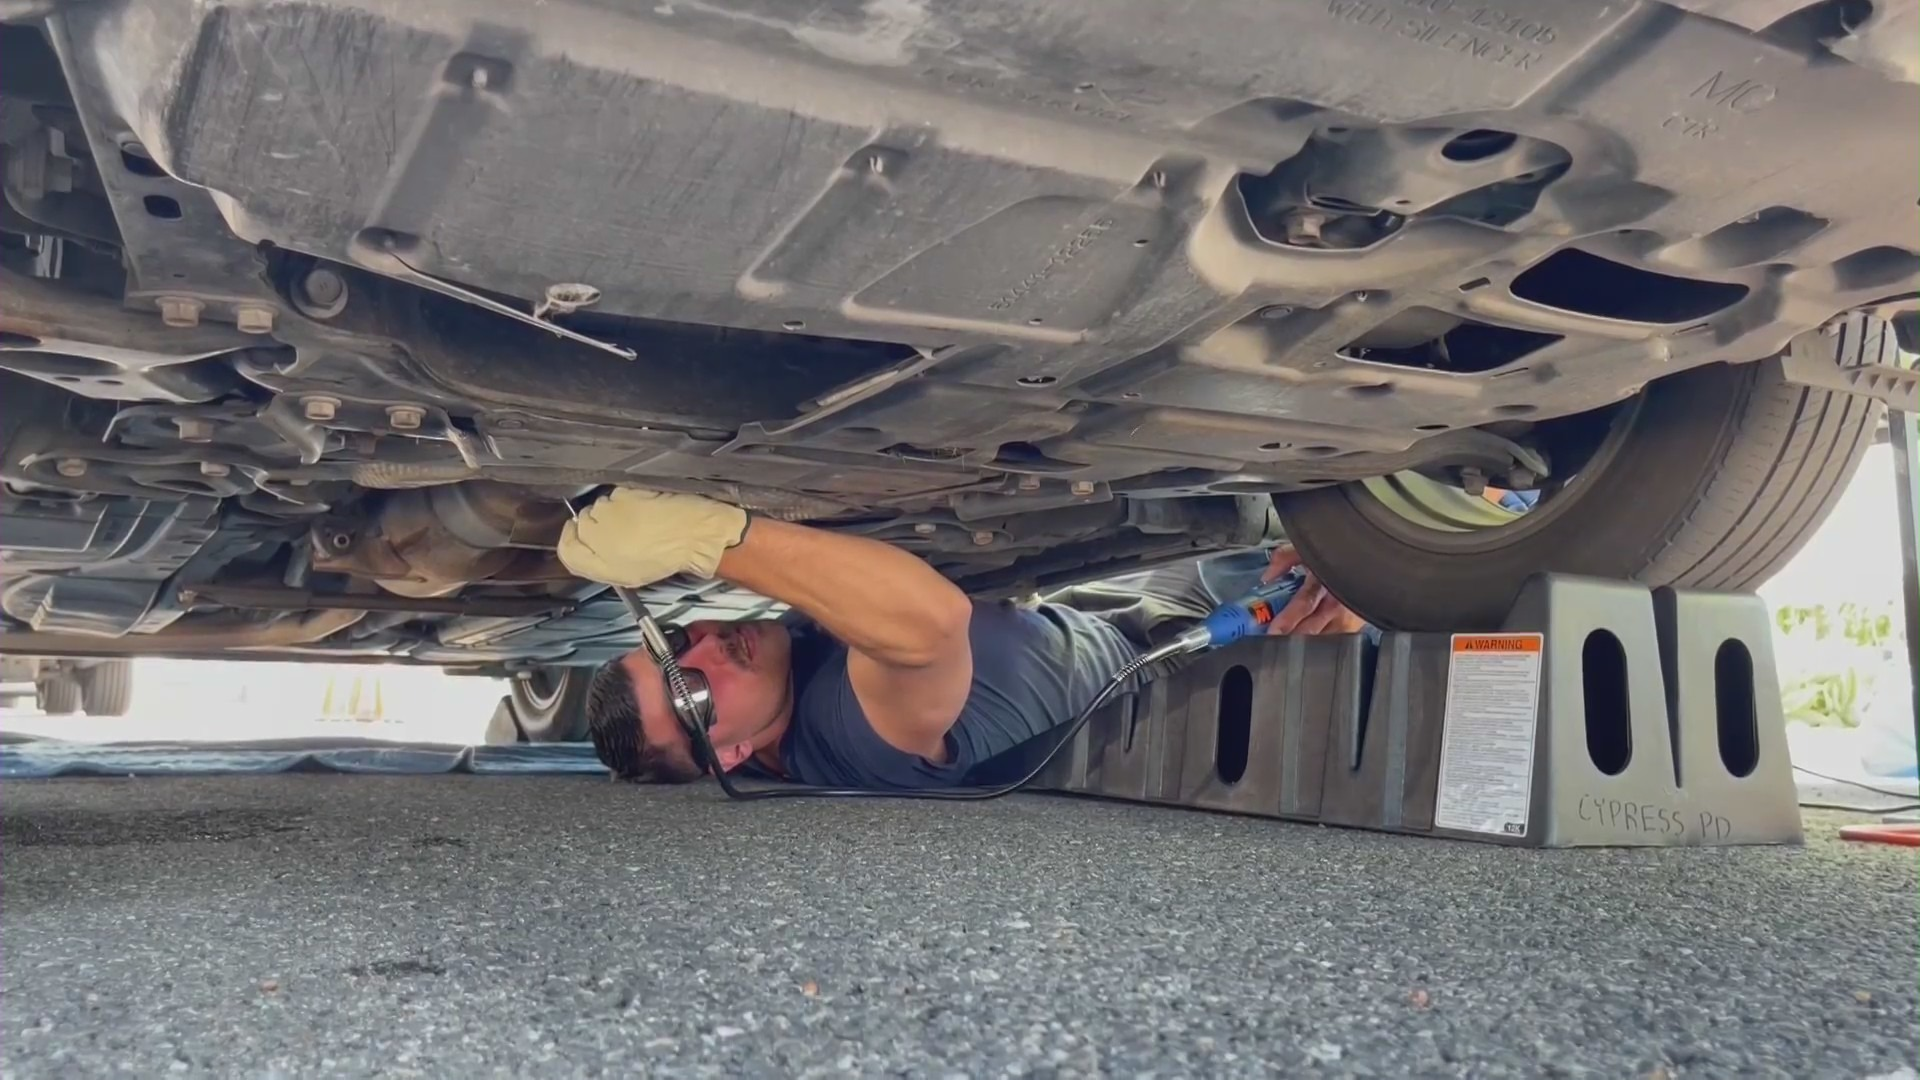 Law enforcement agencies in Orange County hosted a catalytic converter etching event on June 12, 2021.